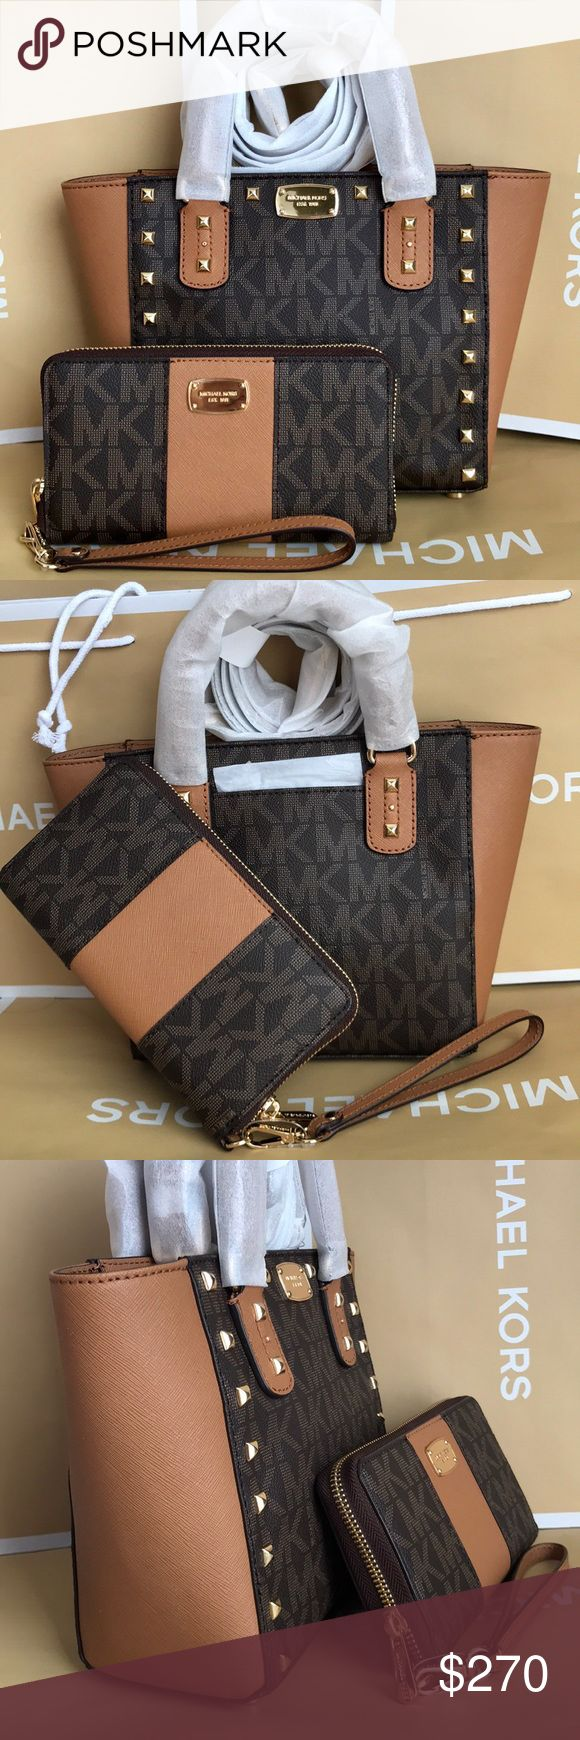 Michael Kors Set 100% Authentic Michael Kors Purse Crossbody and Wallet, brand new!color Brown/Acorn Michael Kors Bags Crossbody Bags